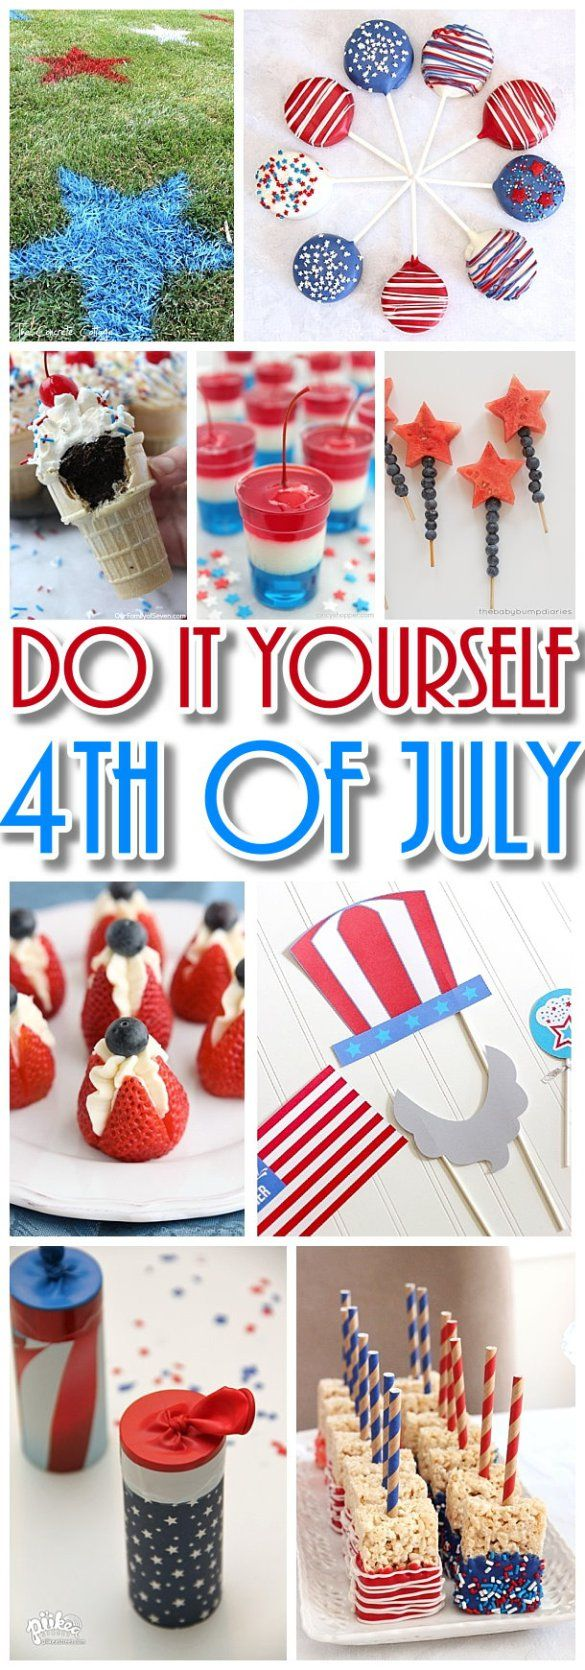 The 25 best 4th of july games ideas on pinterest 4th of july do it yourself 4th of july red white and blue party the best recipes solutioingenieria Gallery